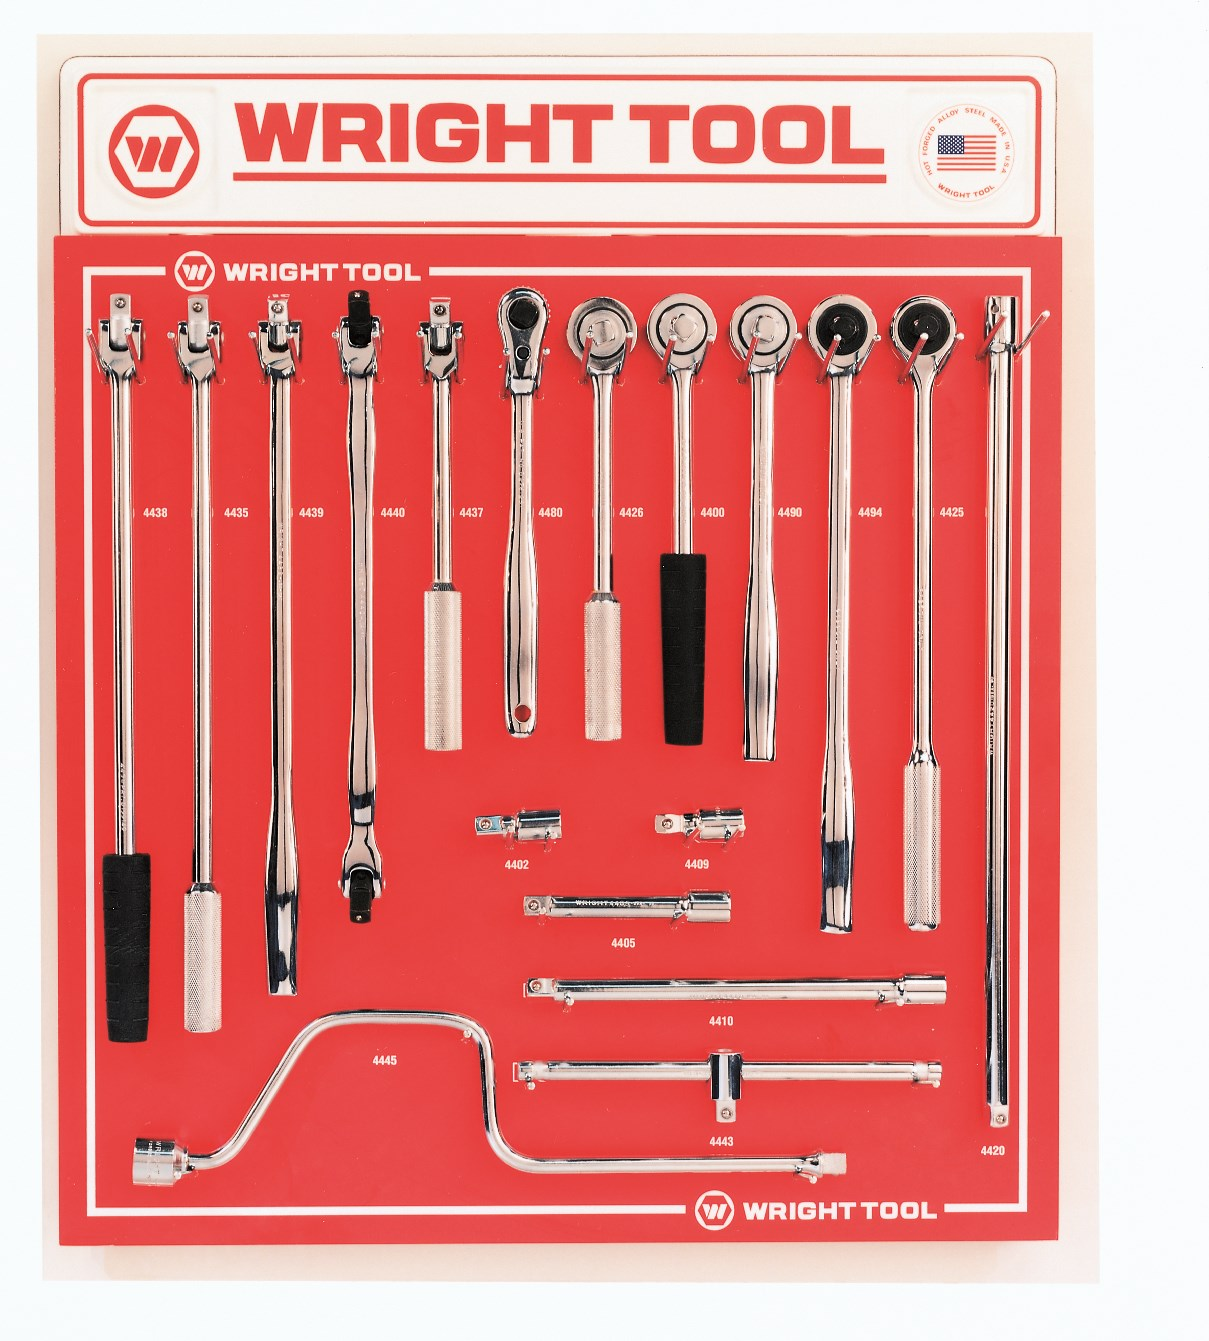 Wright Tool D946 18 Piece 1/2-inch Drive Handles & Attachments